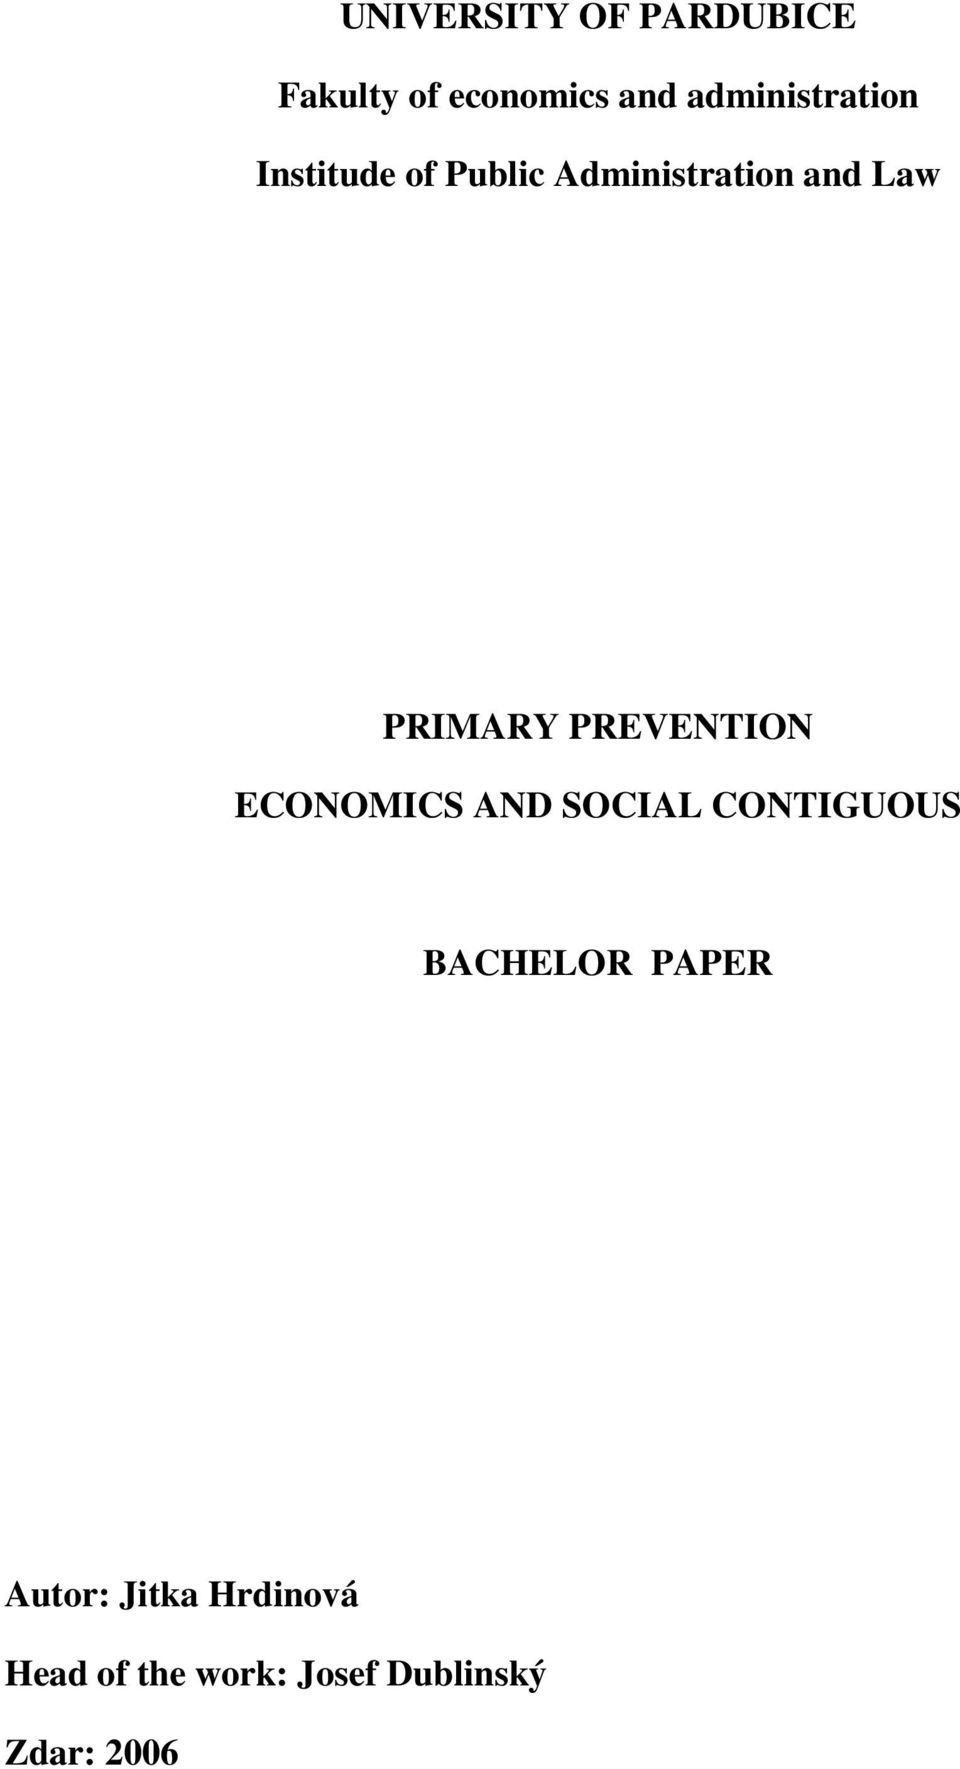 PRIMARY PREVENTION ECONOMICS AND SOCIAL CONTIGUOUS BACHELOR